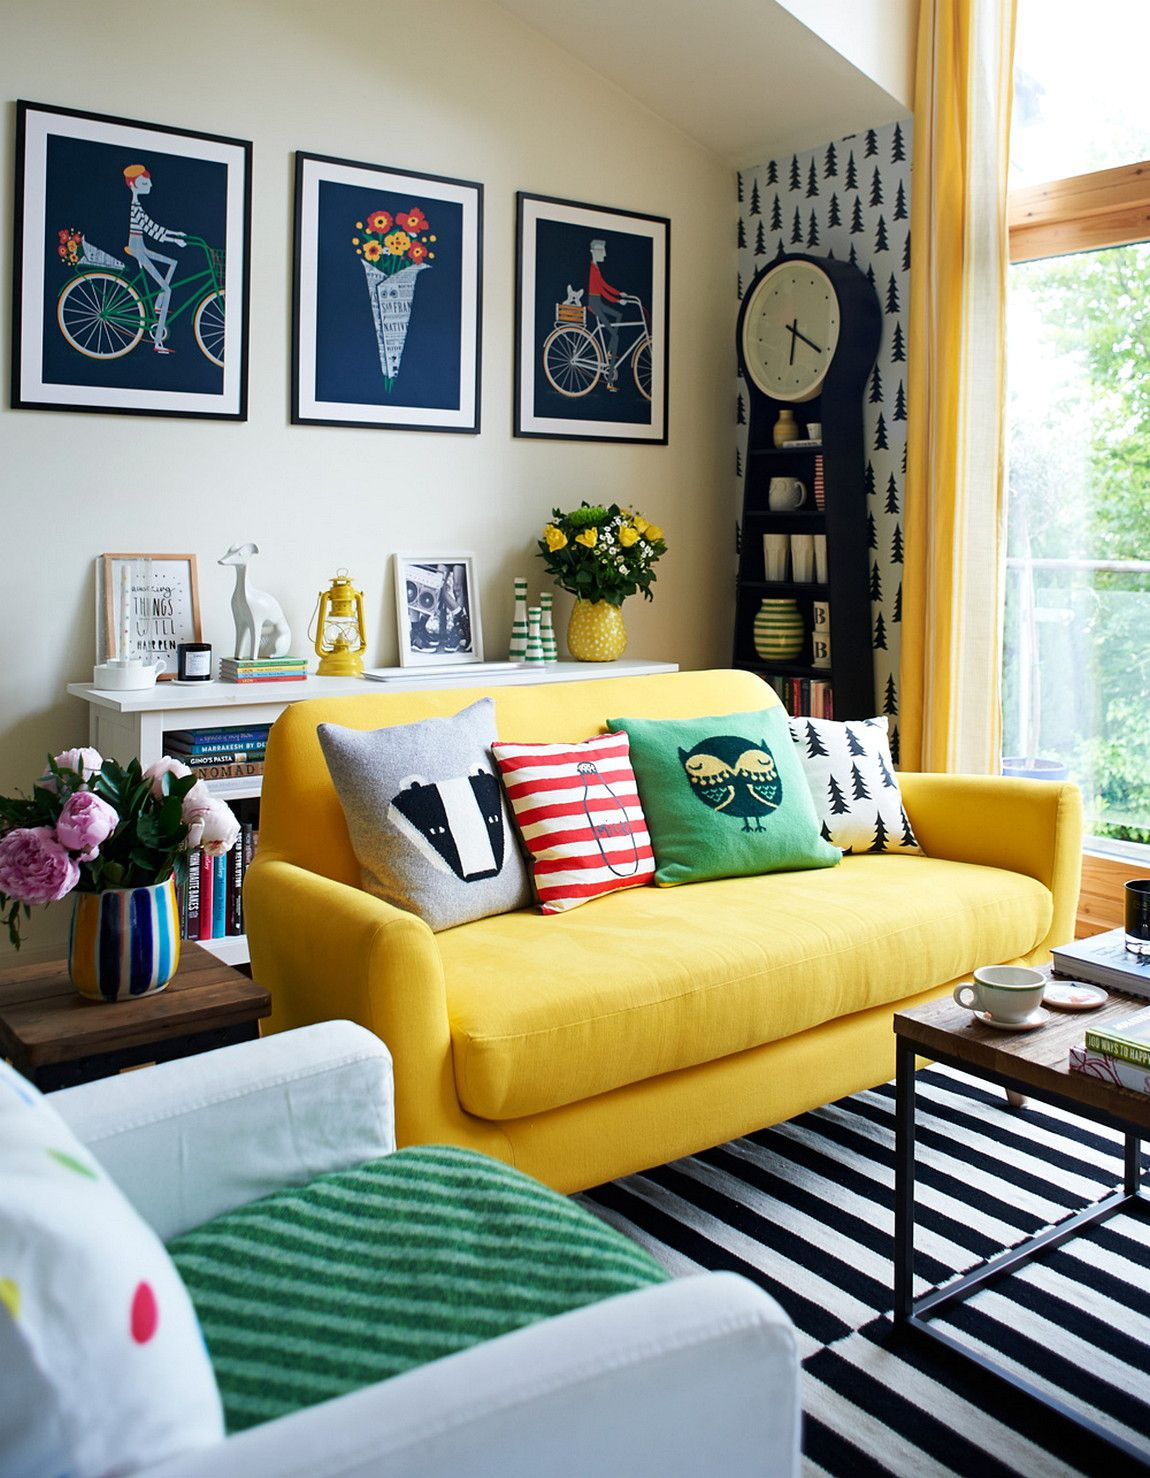 Living Room Decor Inspiring Ideas Design With Images Colourful